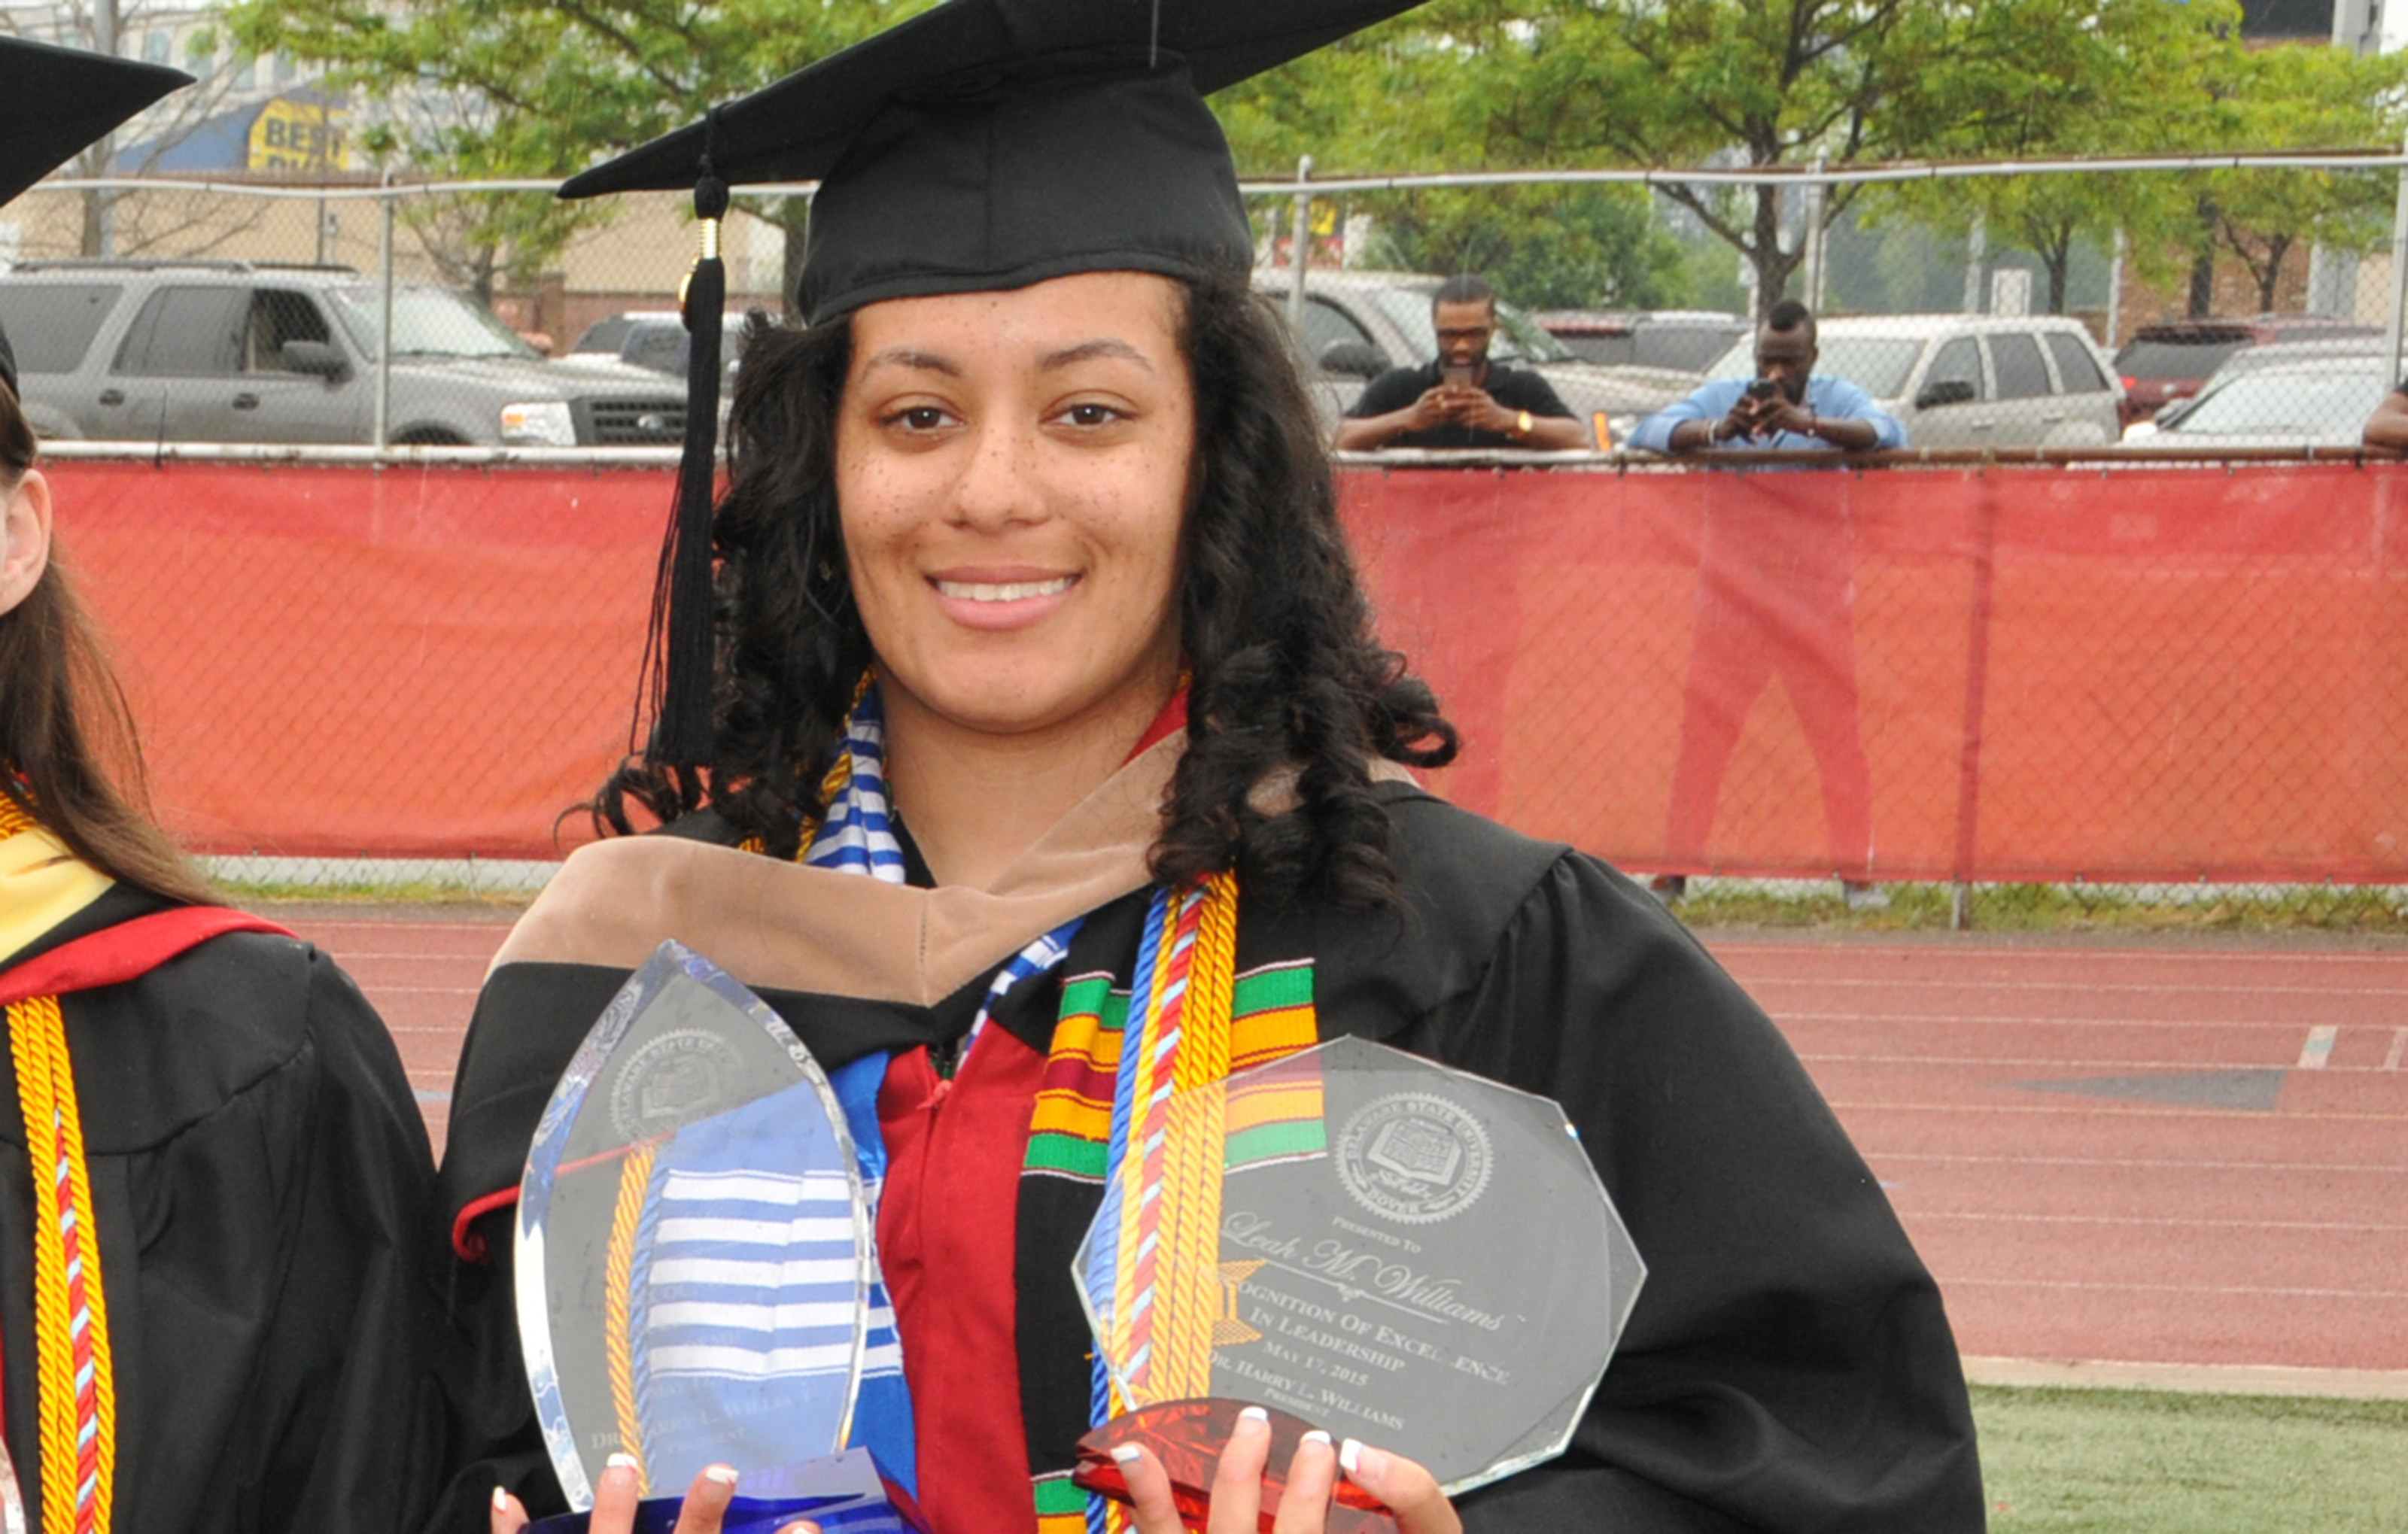 Leah Williams, 2020 Convocation keynote speaker, is shown in a 2015 graduation photo as she holds her University history-making Presidential Academic Award and Presidential Leadership Award -- the only Del State graduate to win both awards.